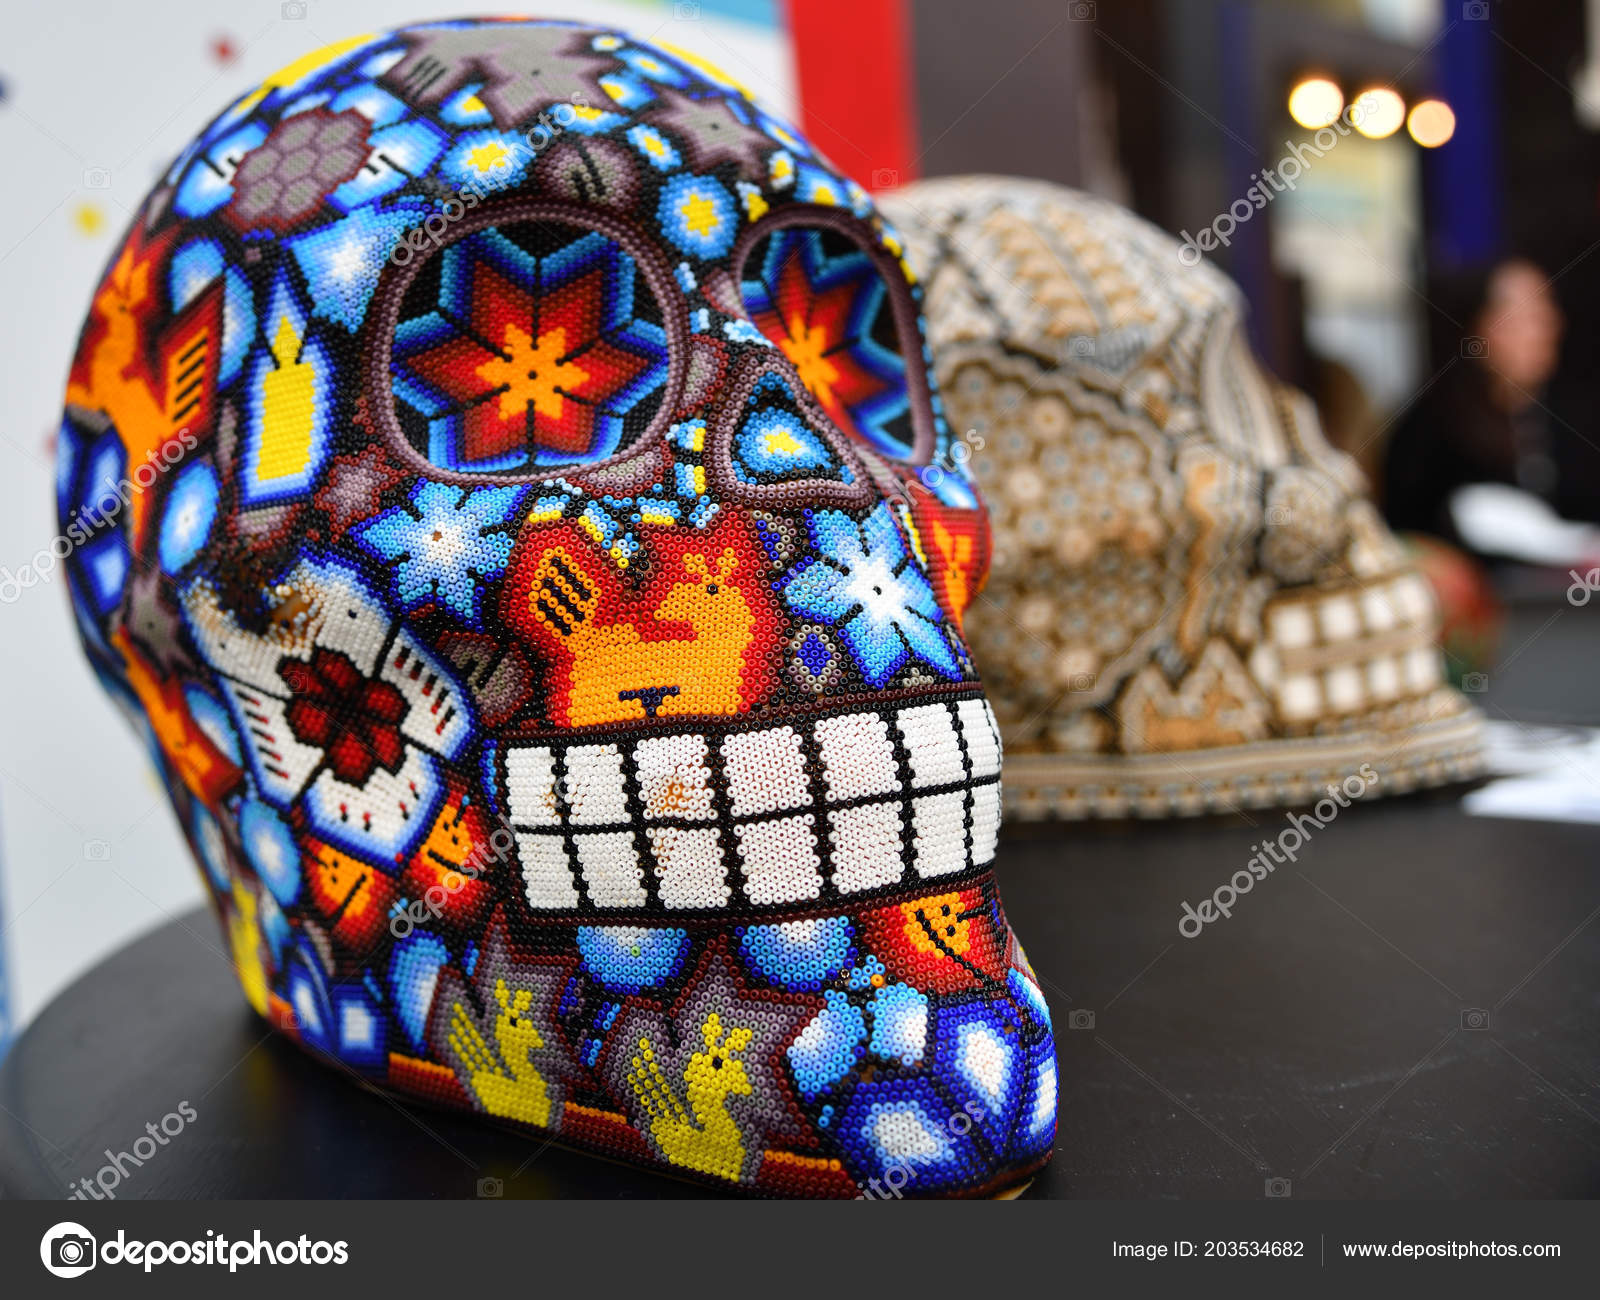 Colourful Skull From Mexican Traditional Huichol Bead Art Symbol Of The Day Dead Dia De Los Muertos Photo By Znm666